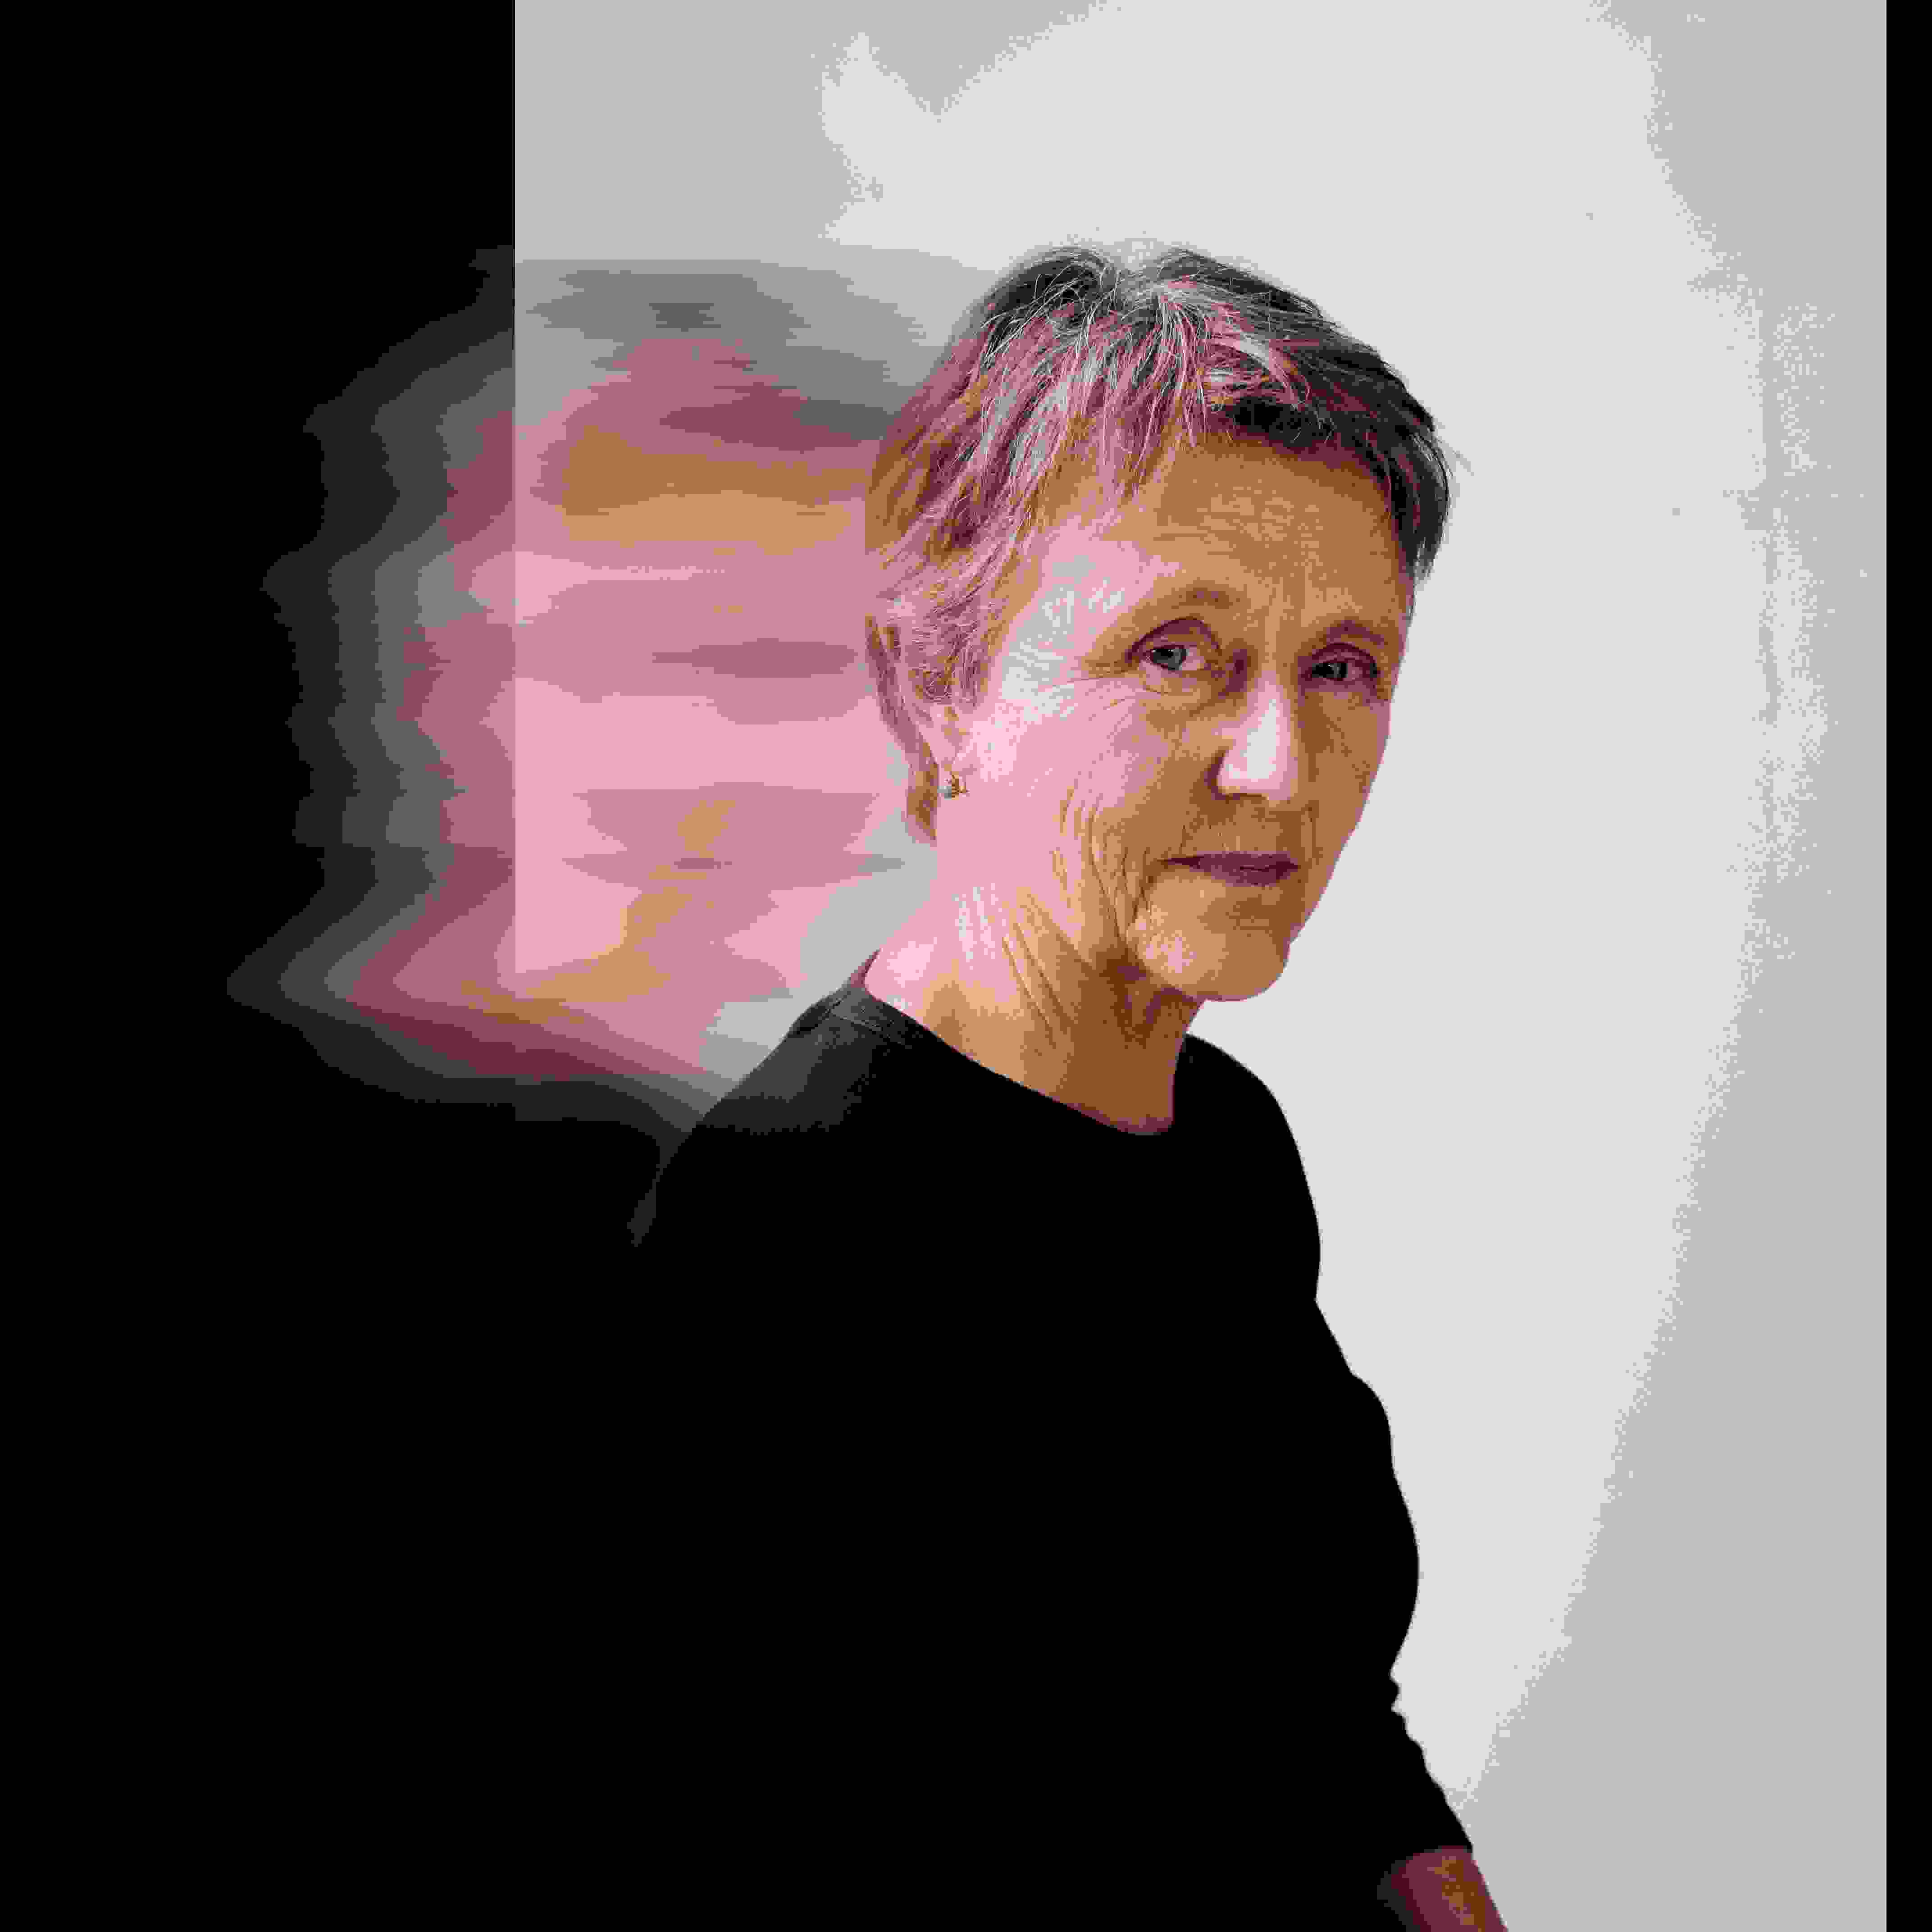 Helen Garner's Savage Self-Scrutiny